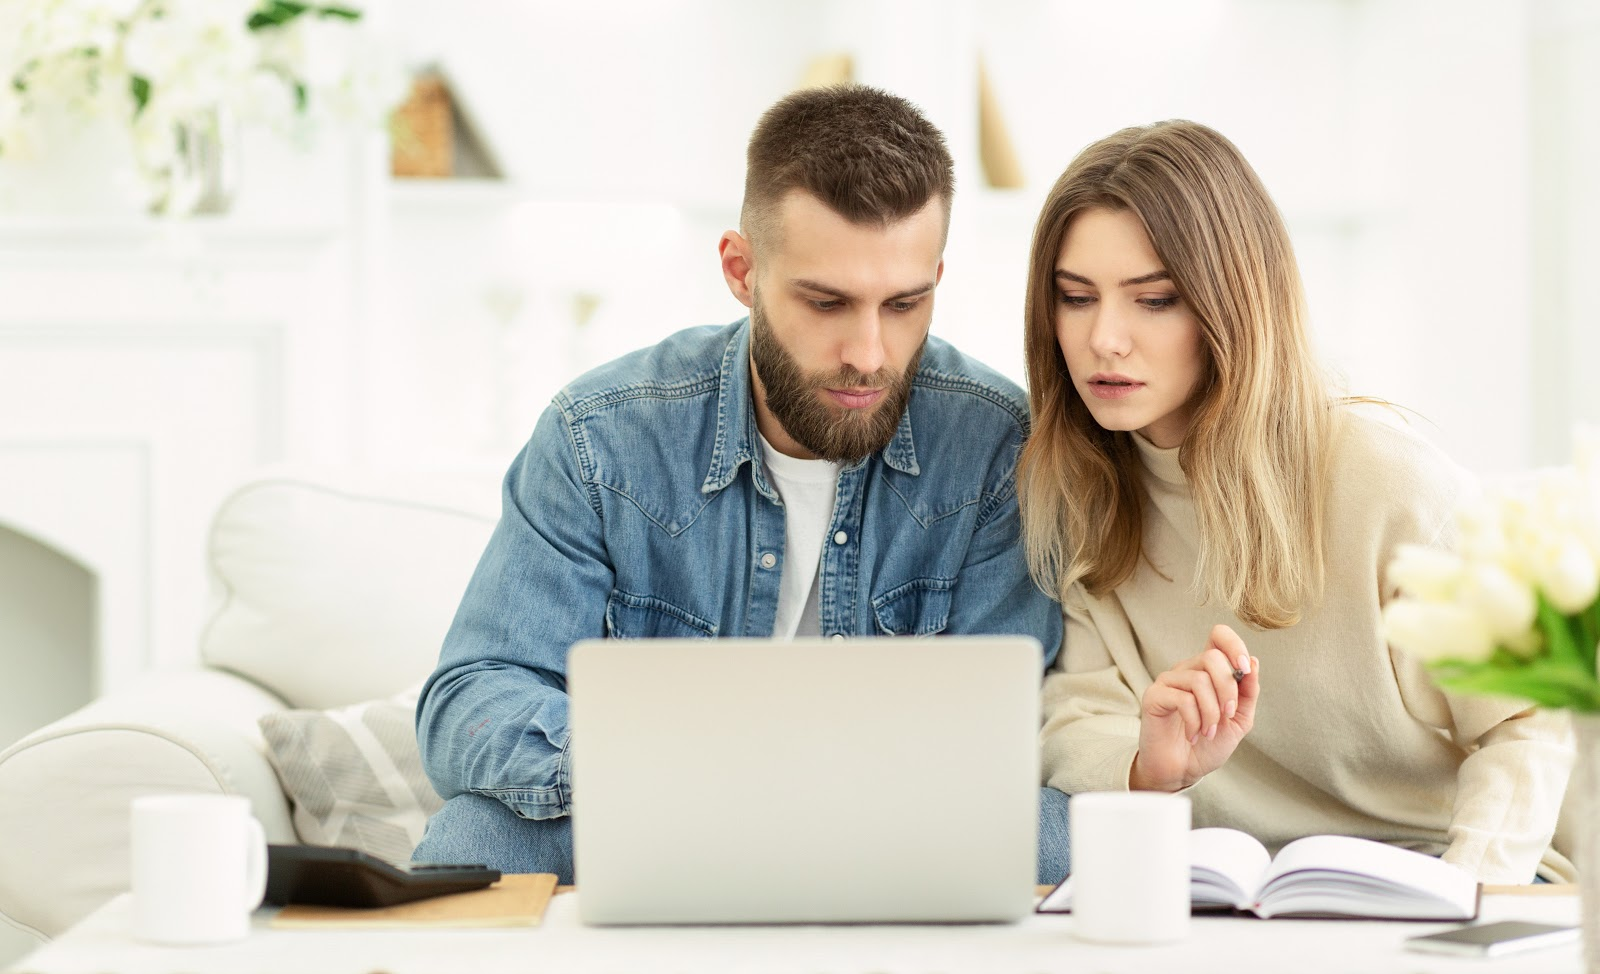 couple reading about how to open a checking account online at home computer